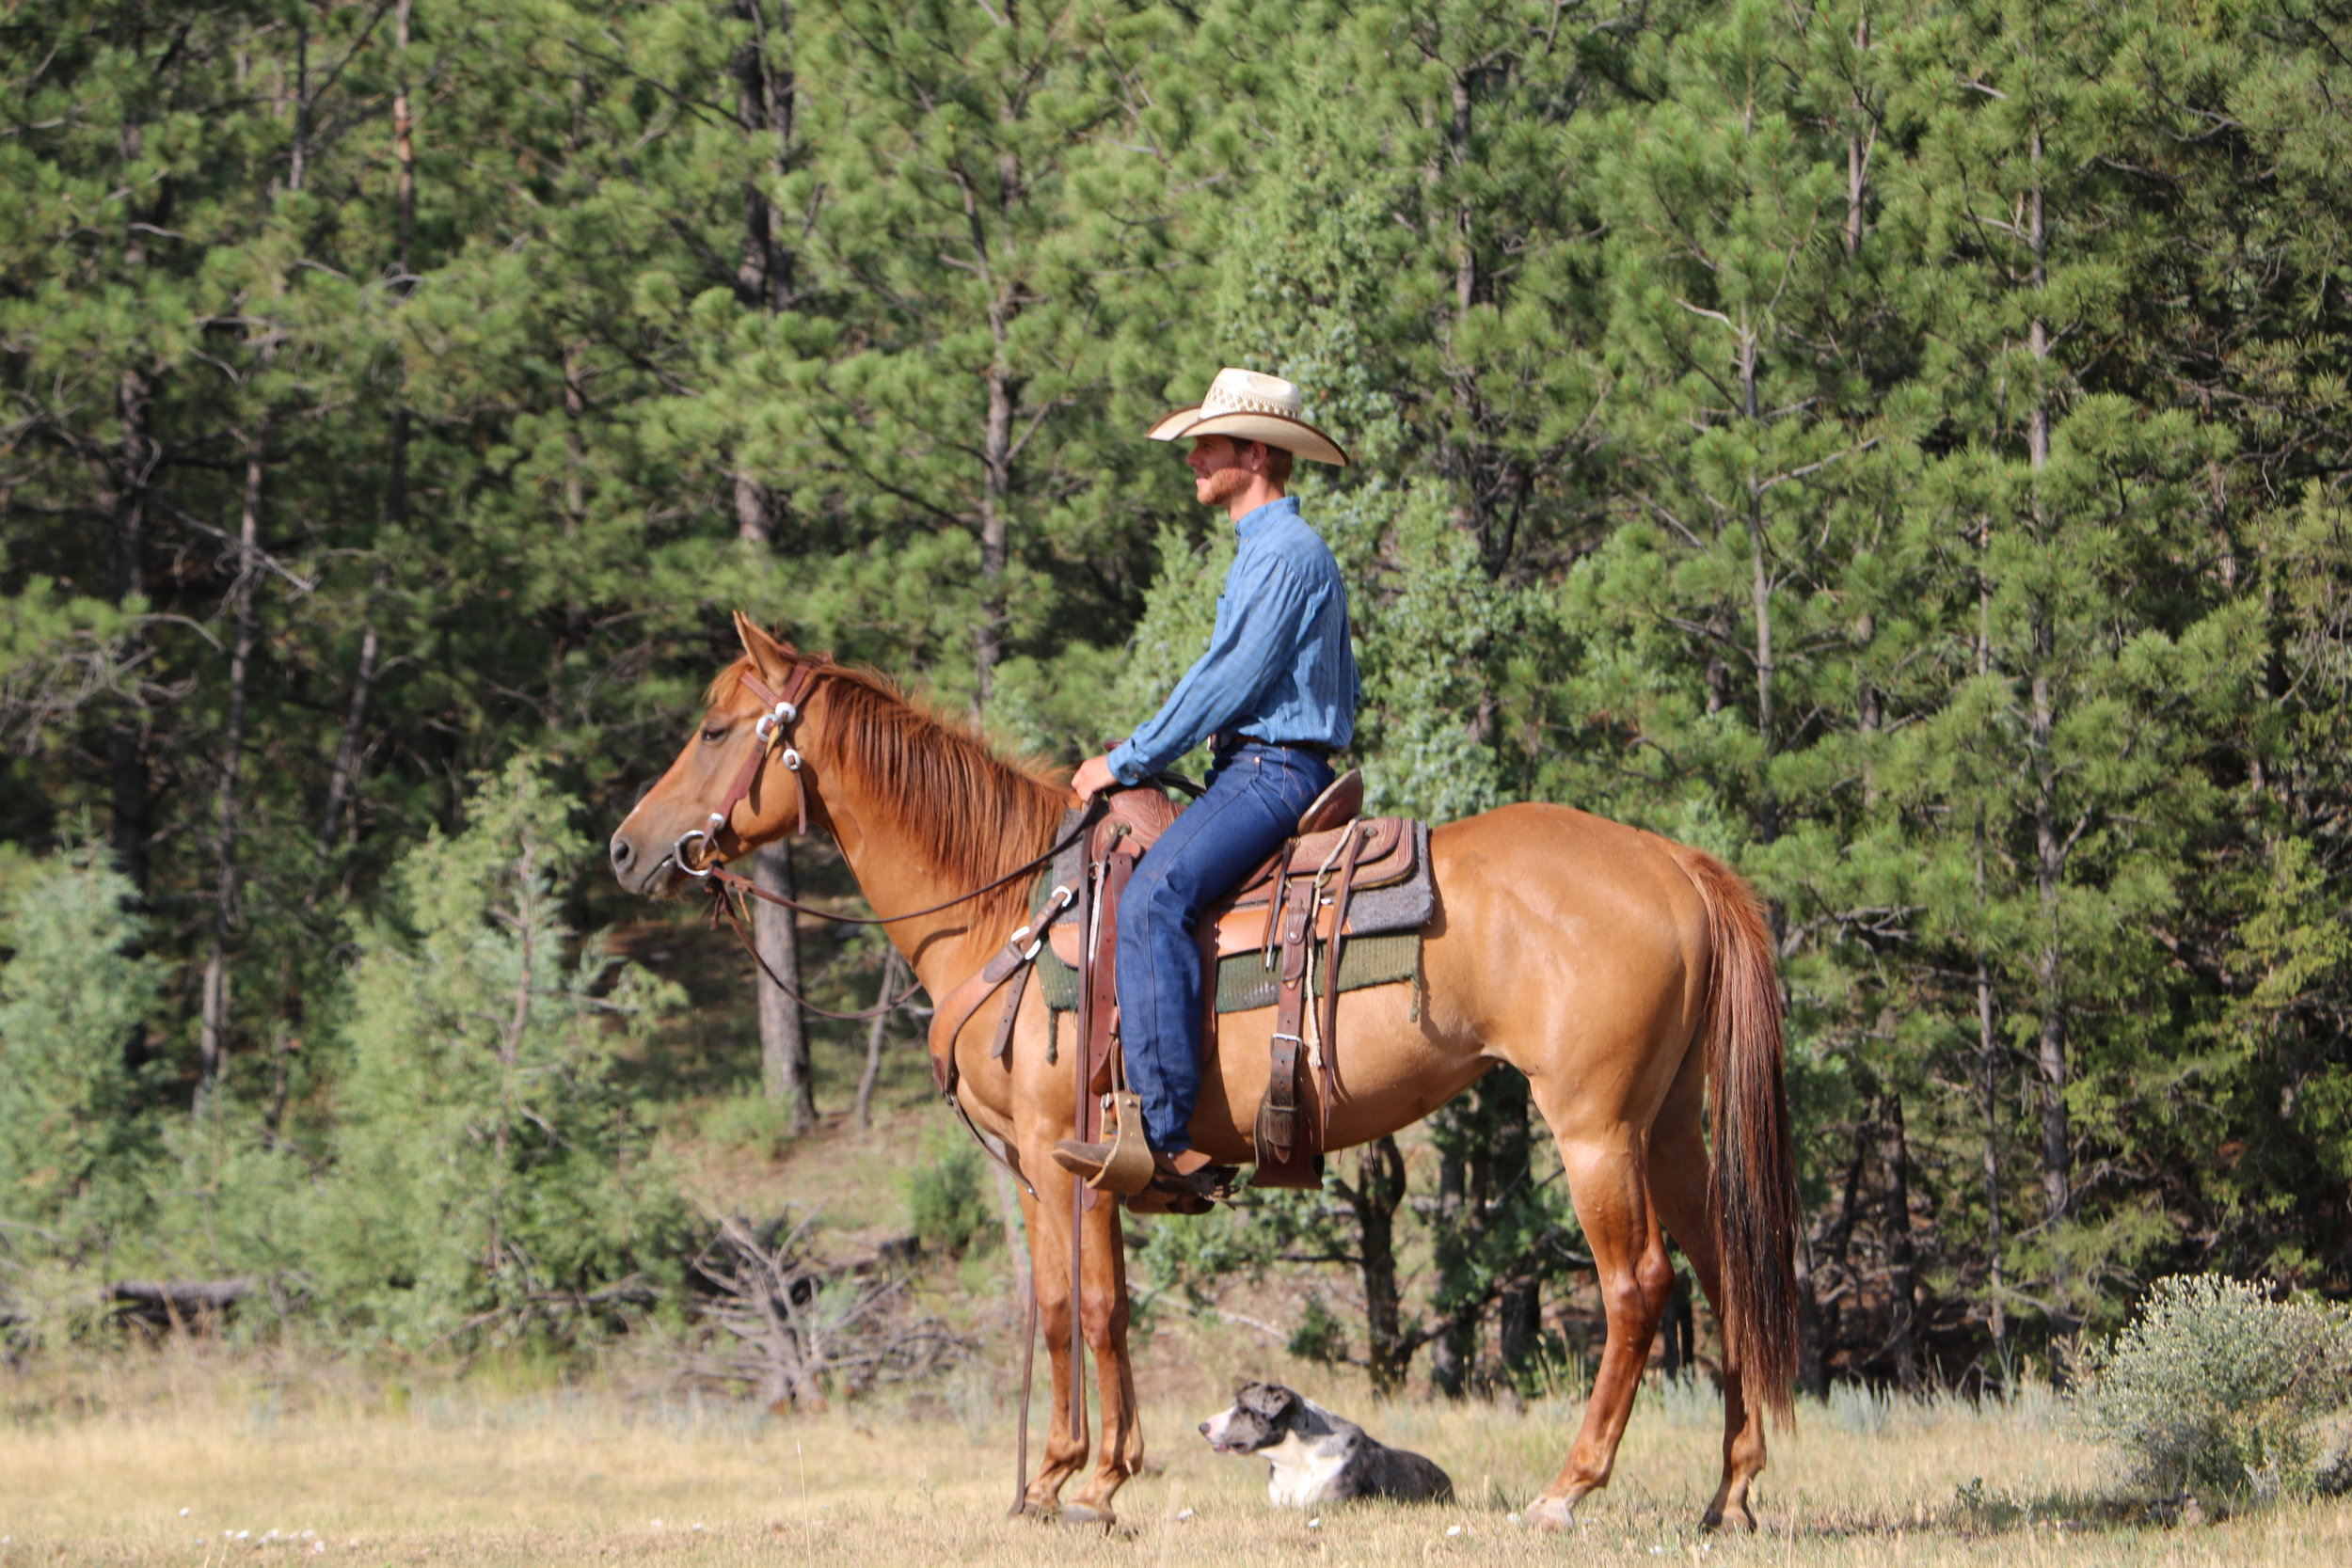 Cee Heart Rev Fritz - 2013 Red Dun Mare